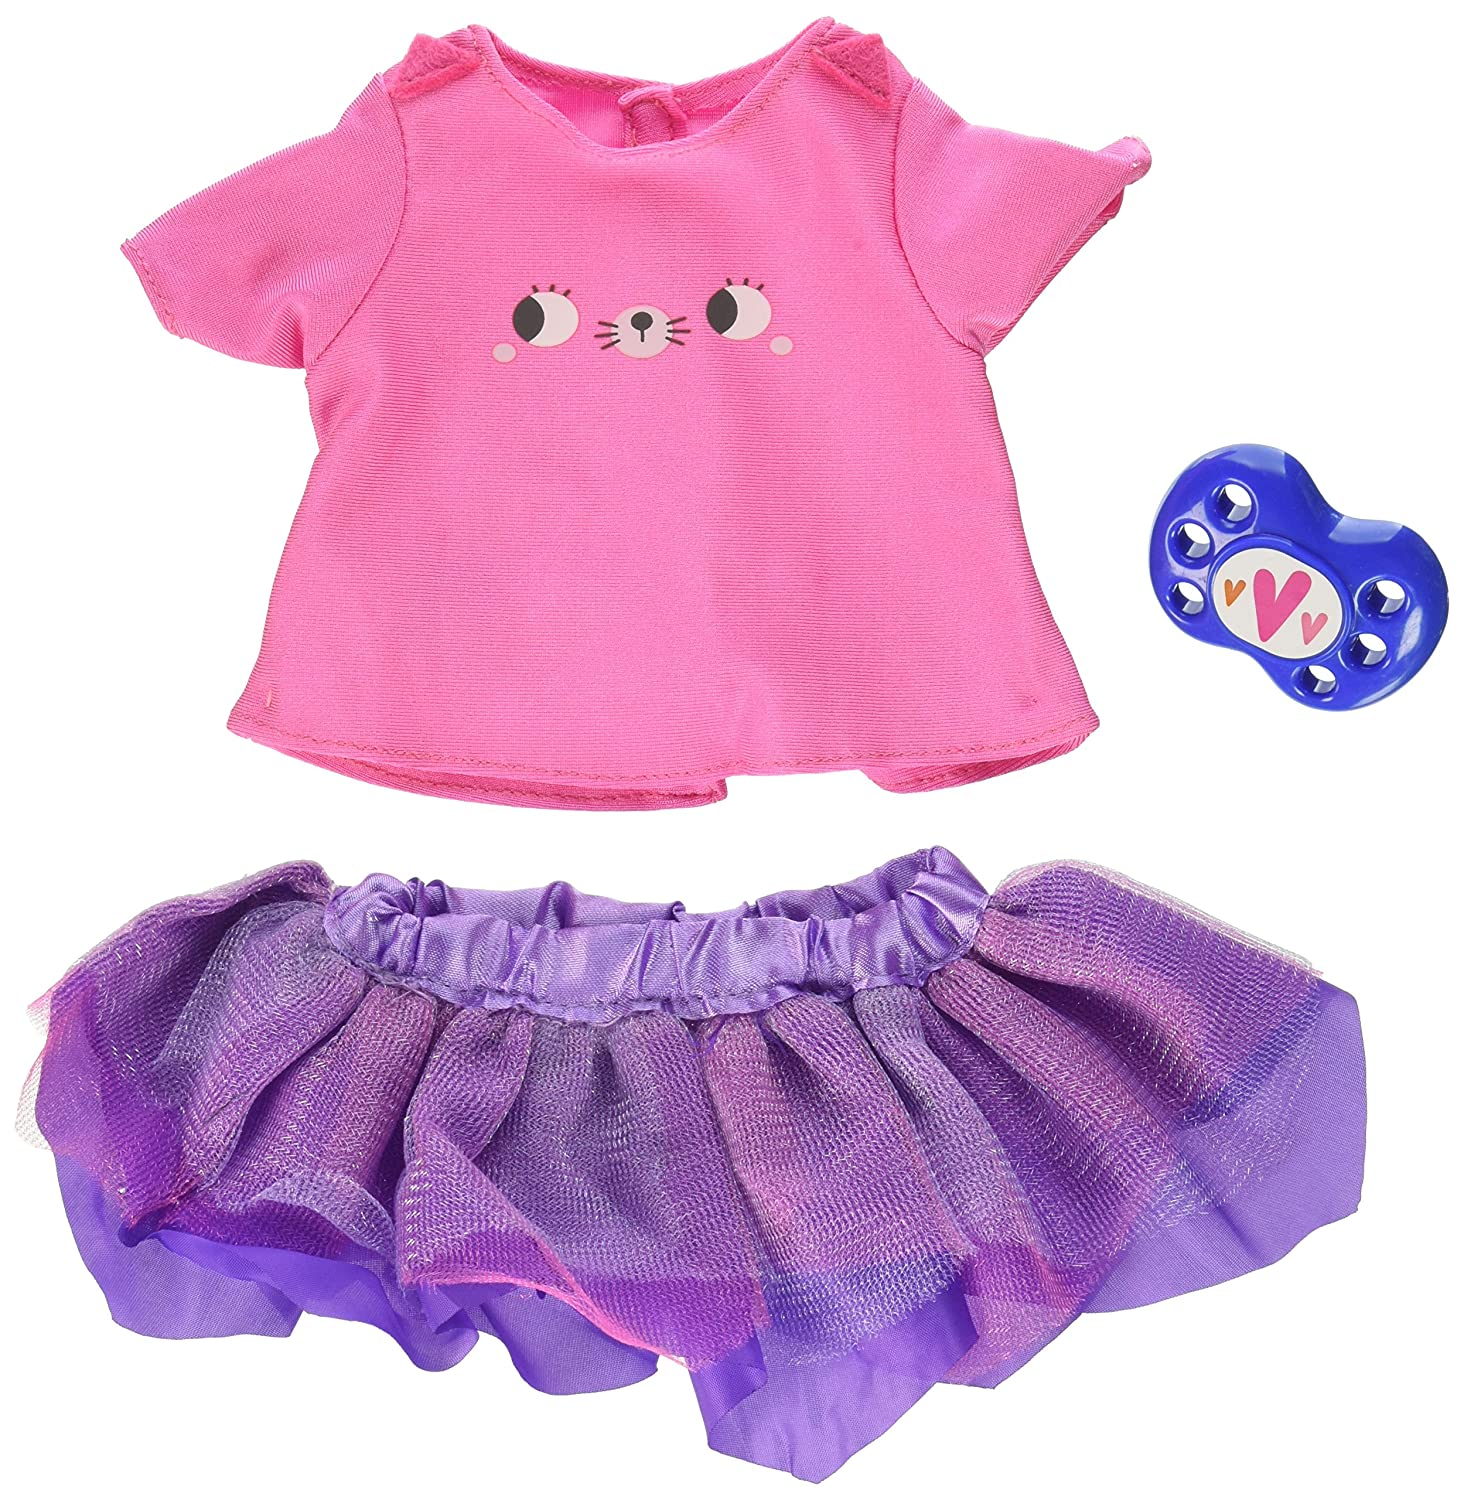 Baby Alive Single Outfit Set - Floral Dress Just Play - Import 75188